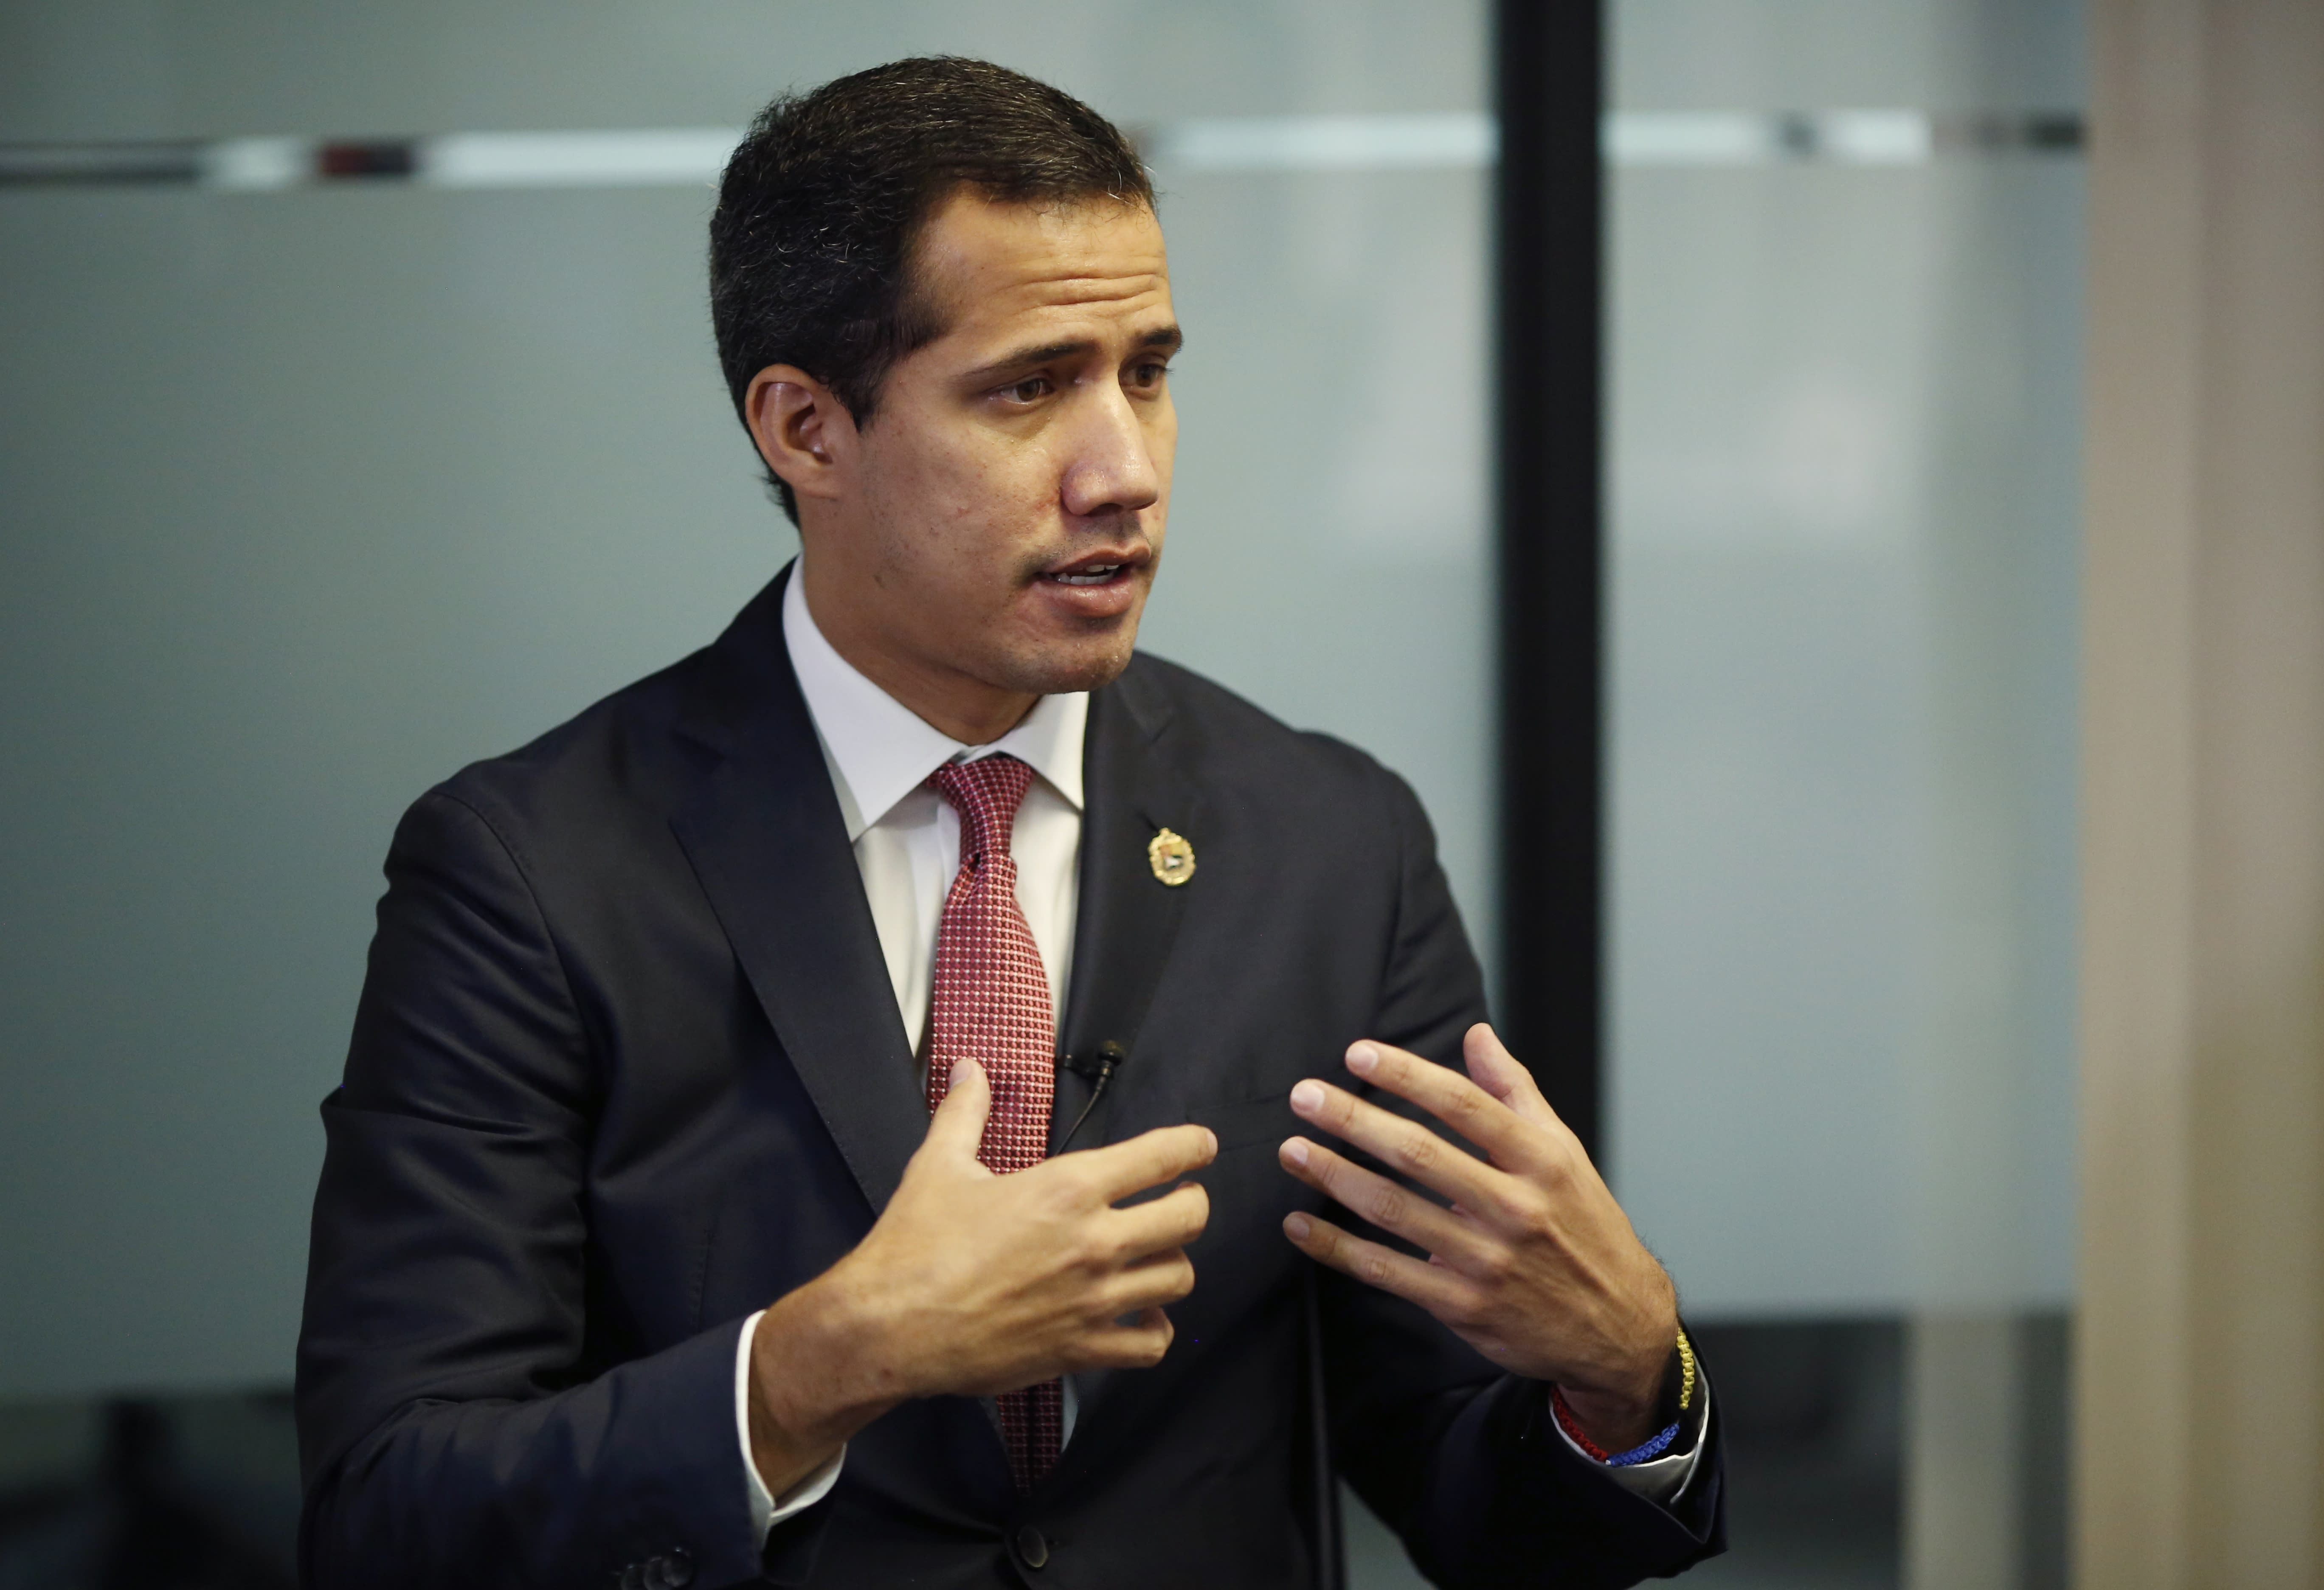 Venezuela's National Assembly President and self proclaimed interim President Juan Guaido speaks during a interview with the Associated Press in Caracas, Venezuela, Friday, Aug. 23, 2019. Guaido said that opponents of President Nicolas Maduro won't participate in any early legislative elections he calls amid a protracted power struggle in the crisis-stricken nation and that participating in any election with the Maduro government still in power would be a farce. (AP Photo/Leonardo Fernandez)